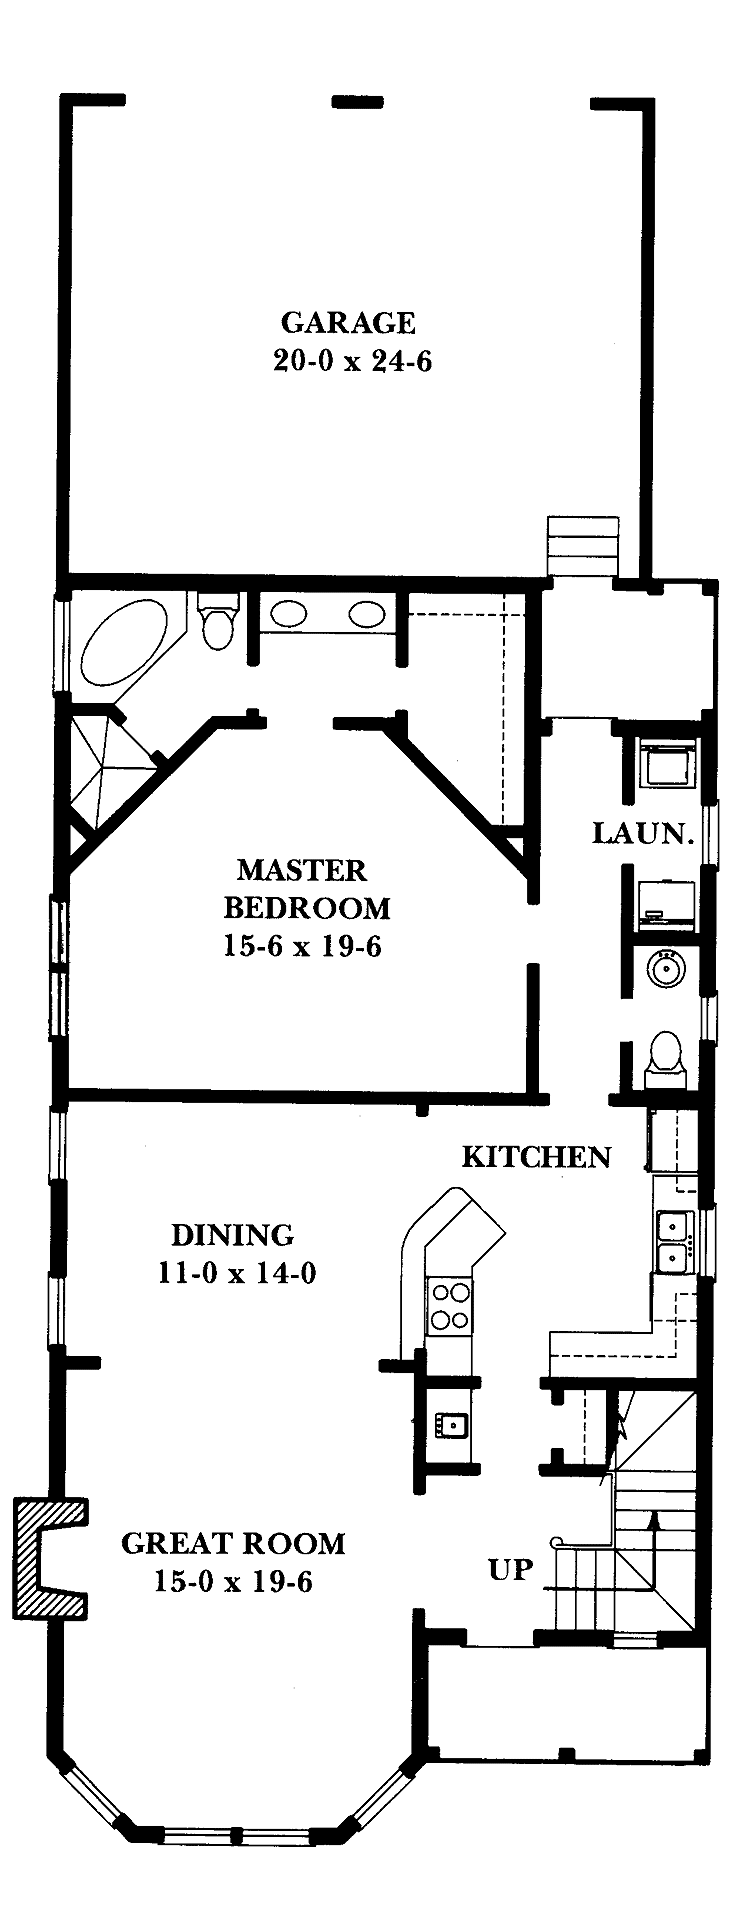 900 sq ft architecture builder house plans designs small size and picture delectable builder house plans designs house plans pinterest house plans